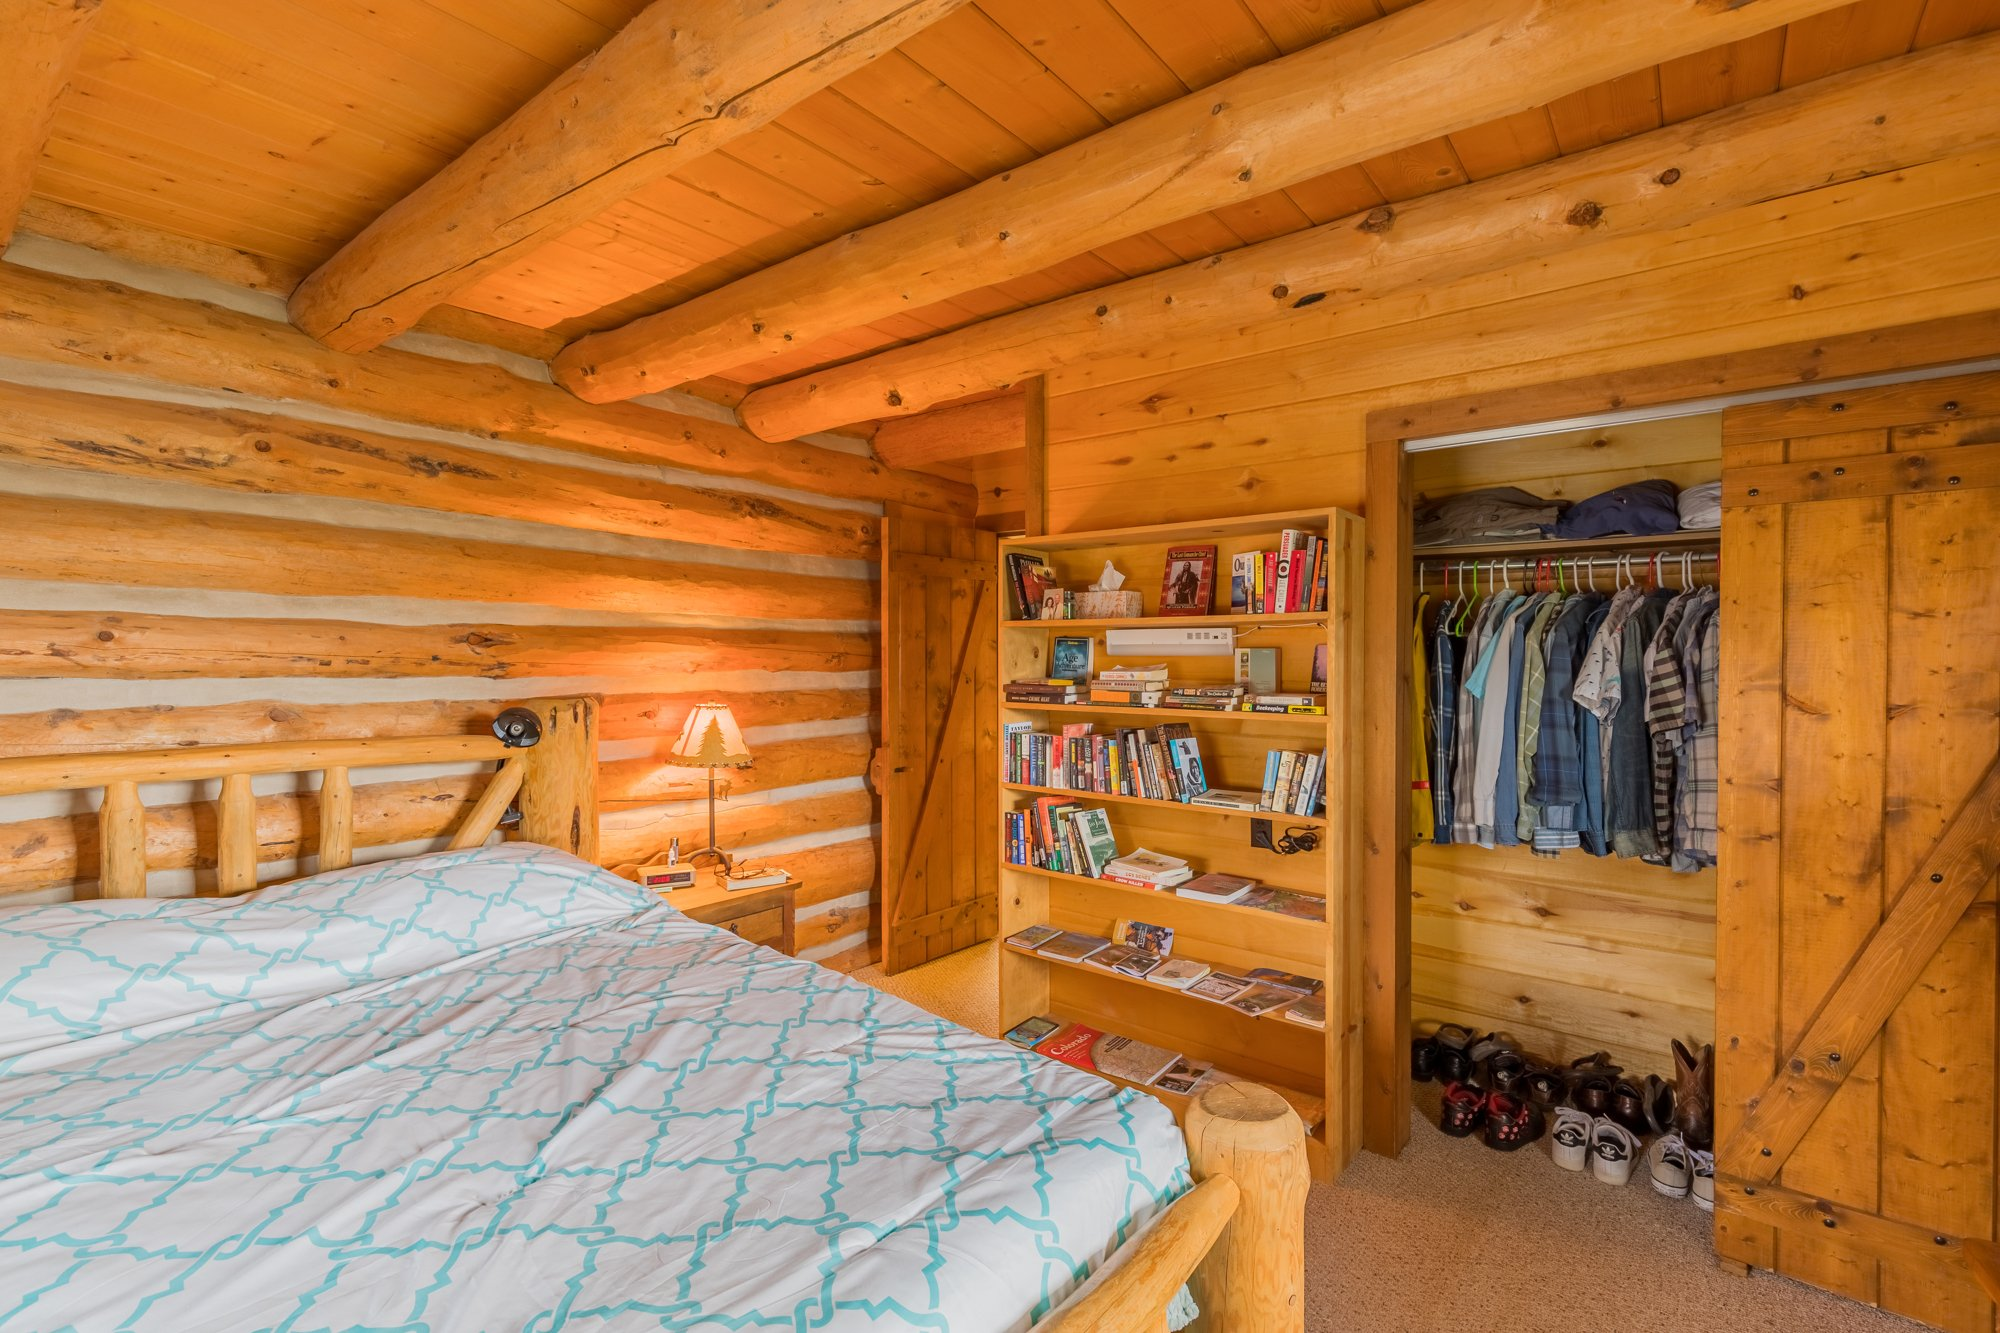 Bedroom with Closet - 21770 Uncompahgre Rd Montrose, CO 81403 - Atha Team Country Real Estate